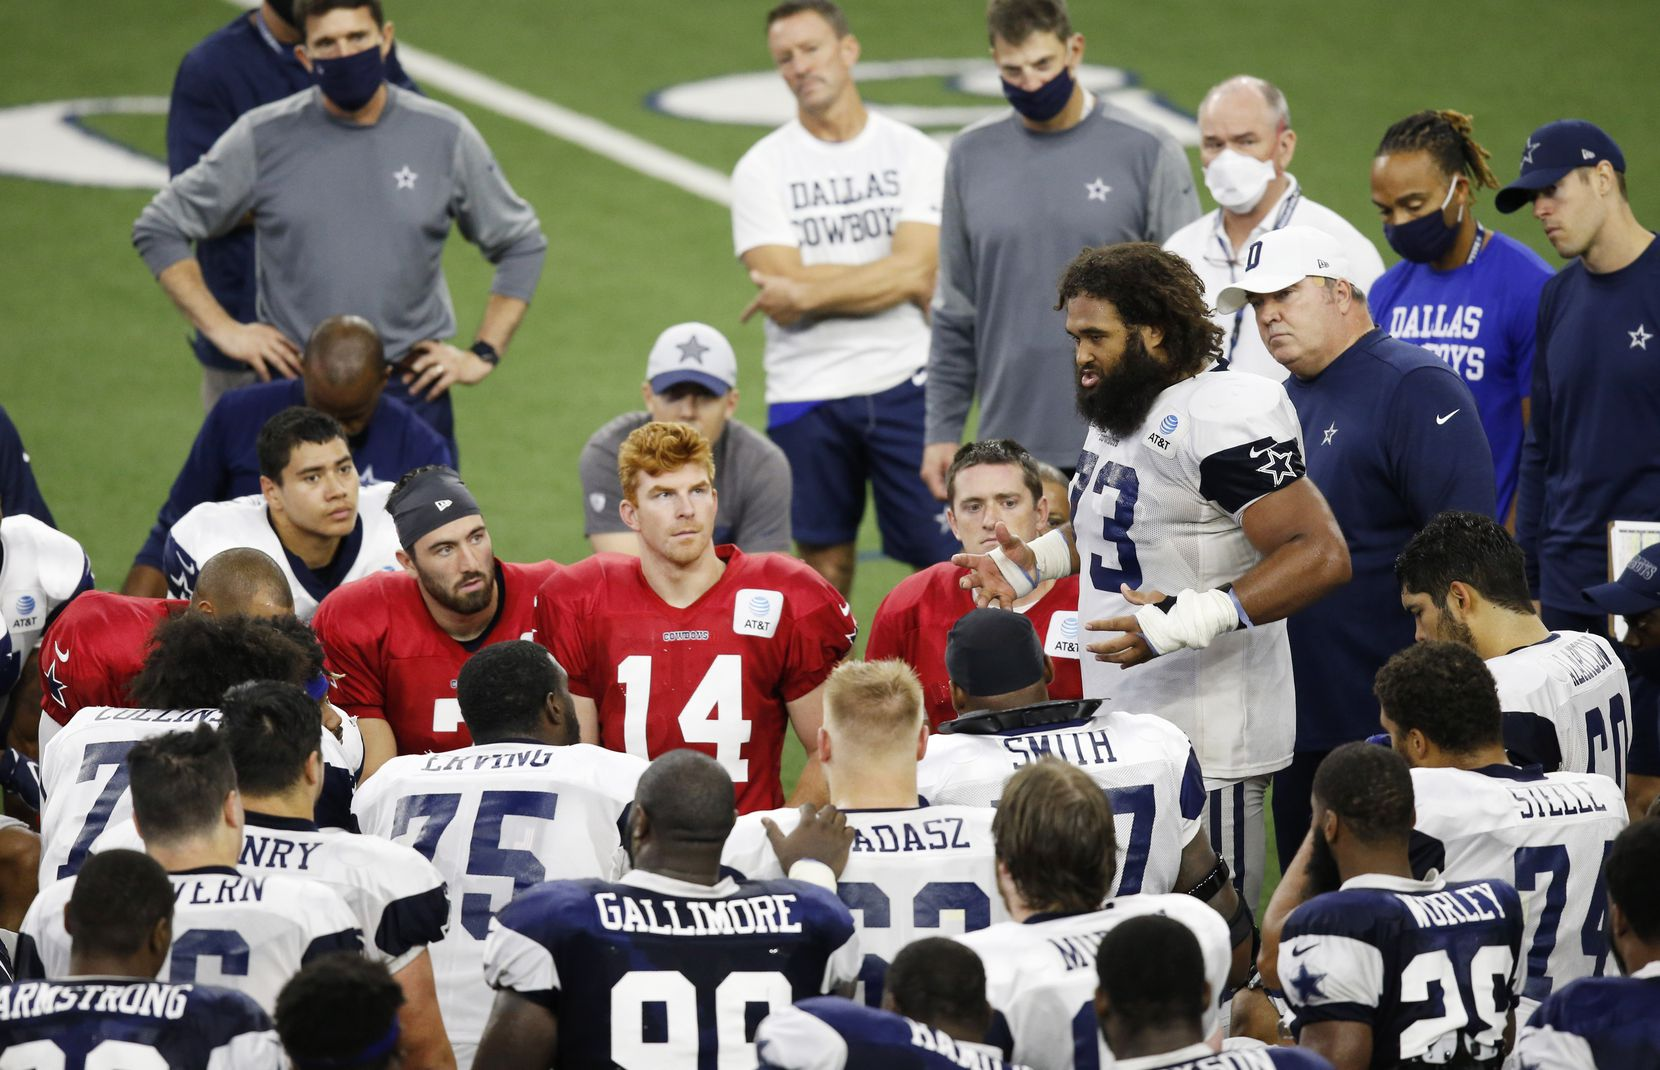 Dallas Cowboys center Joe Looney (73) talks to his teammate shortly after practice during training camp at the Dallas Cowboys headquarters at The Star in Frisco, Texas on Thursday, August 27, 2020. (Vernon Bryant/The Dallas Morning News)